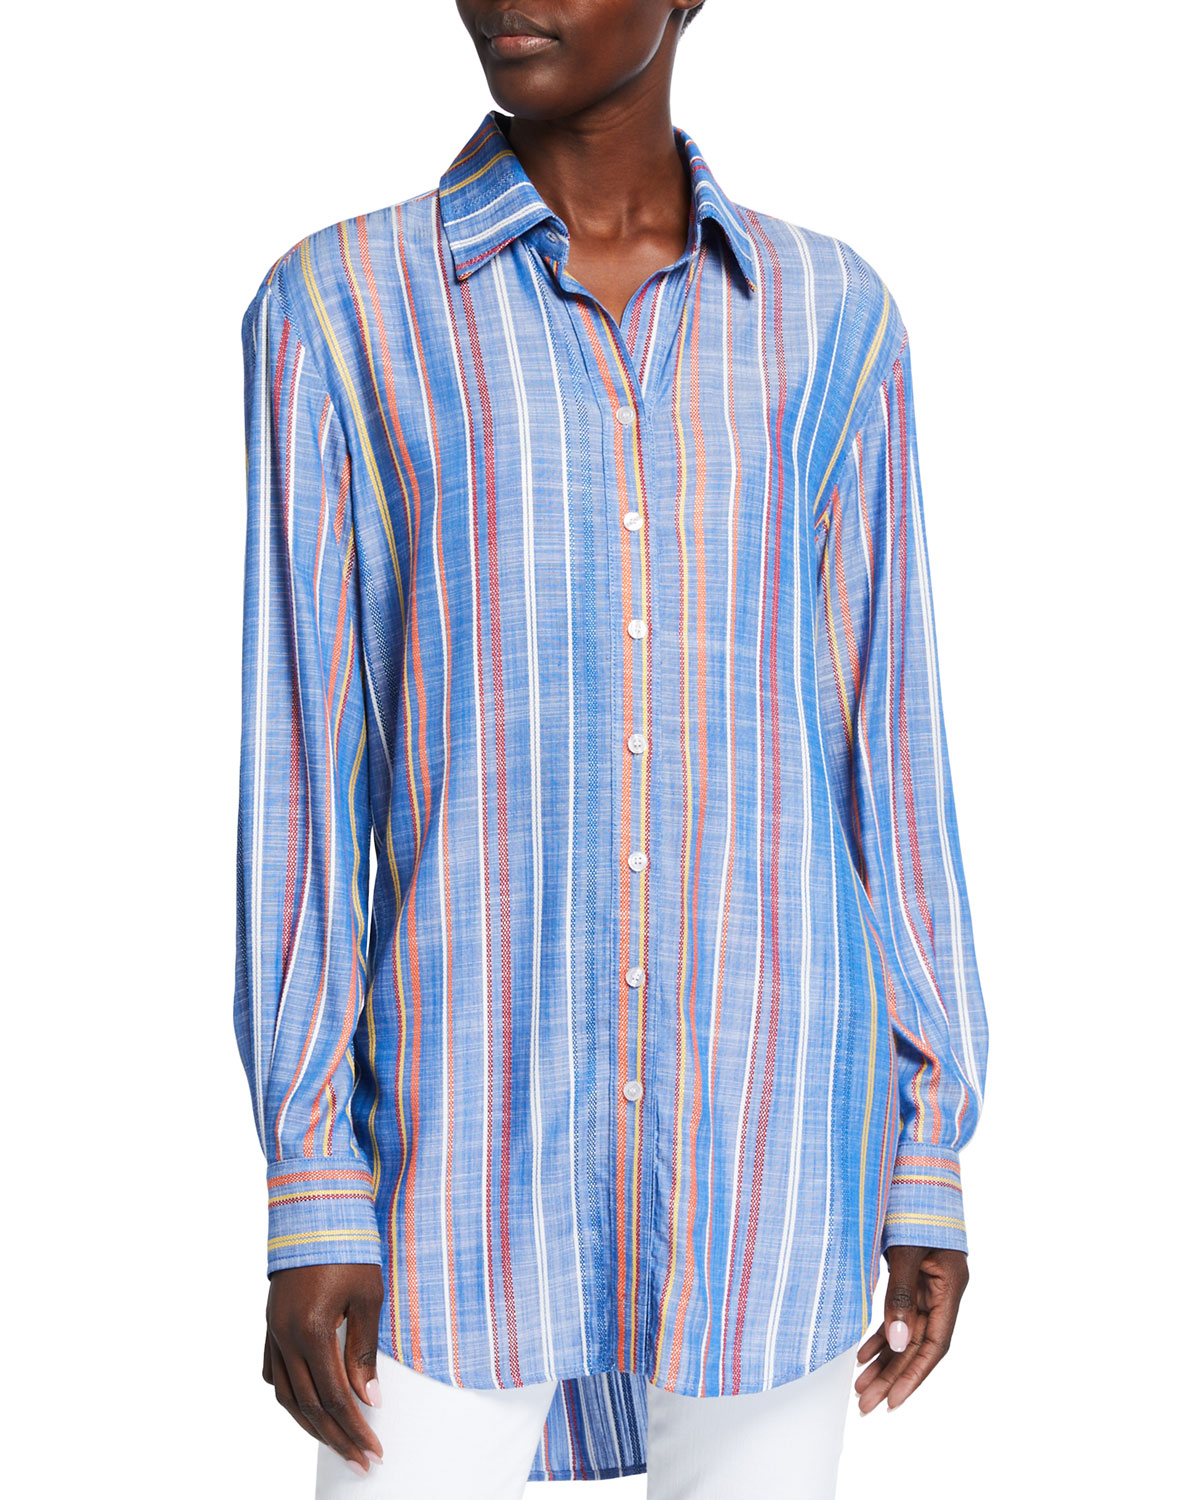 Finley Monica Grover Stripe Button-Down Shirt